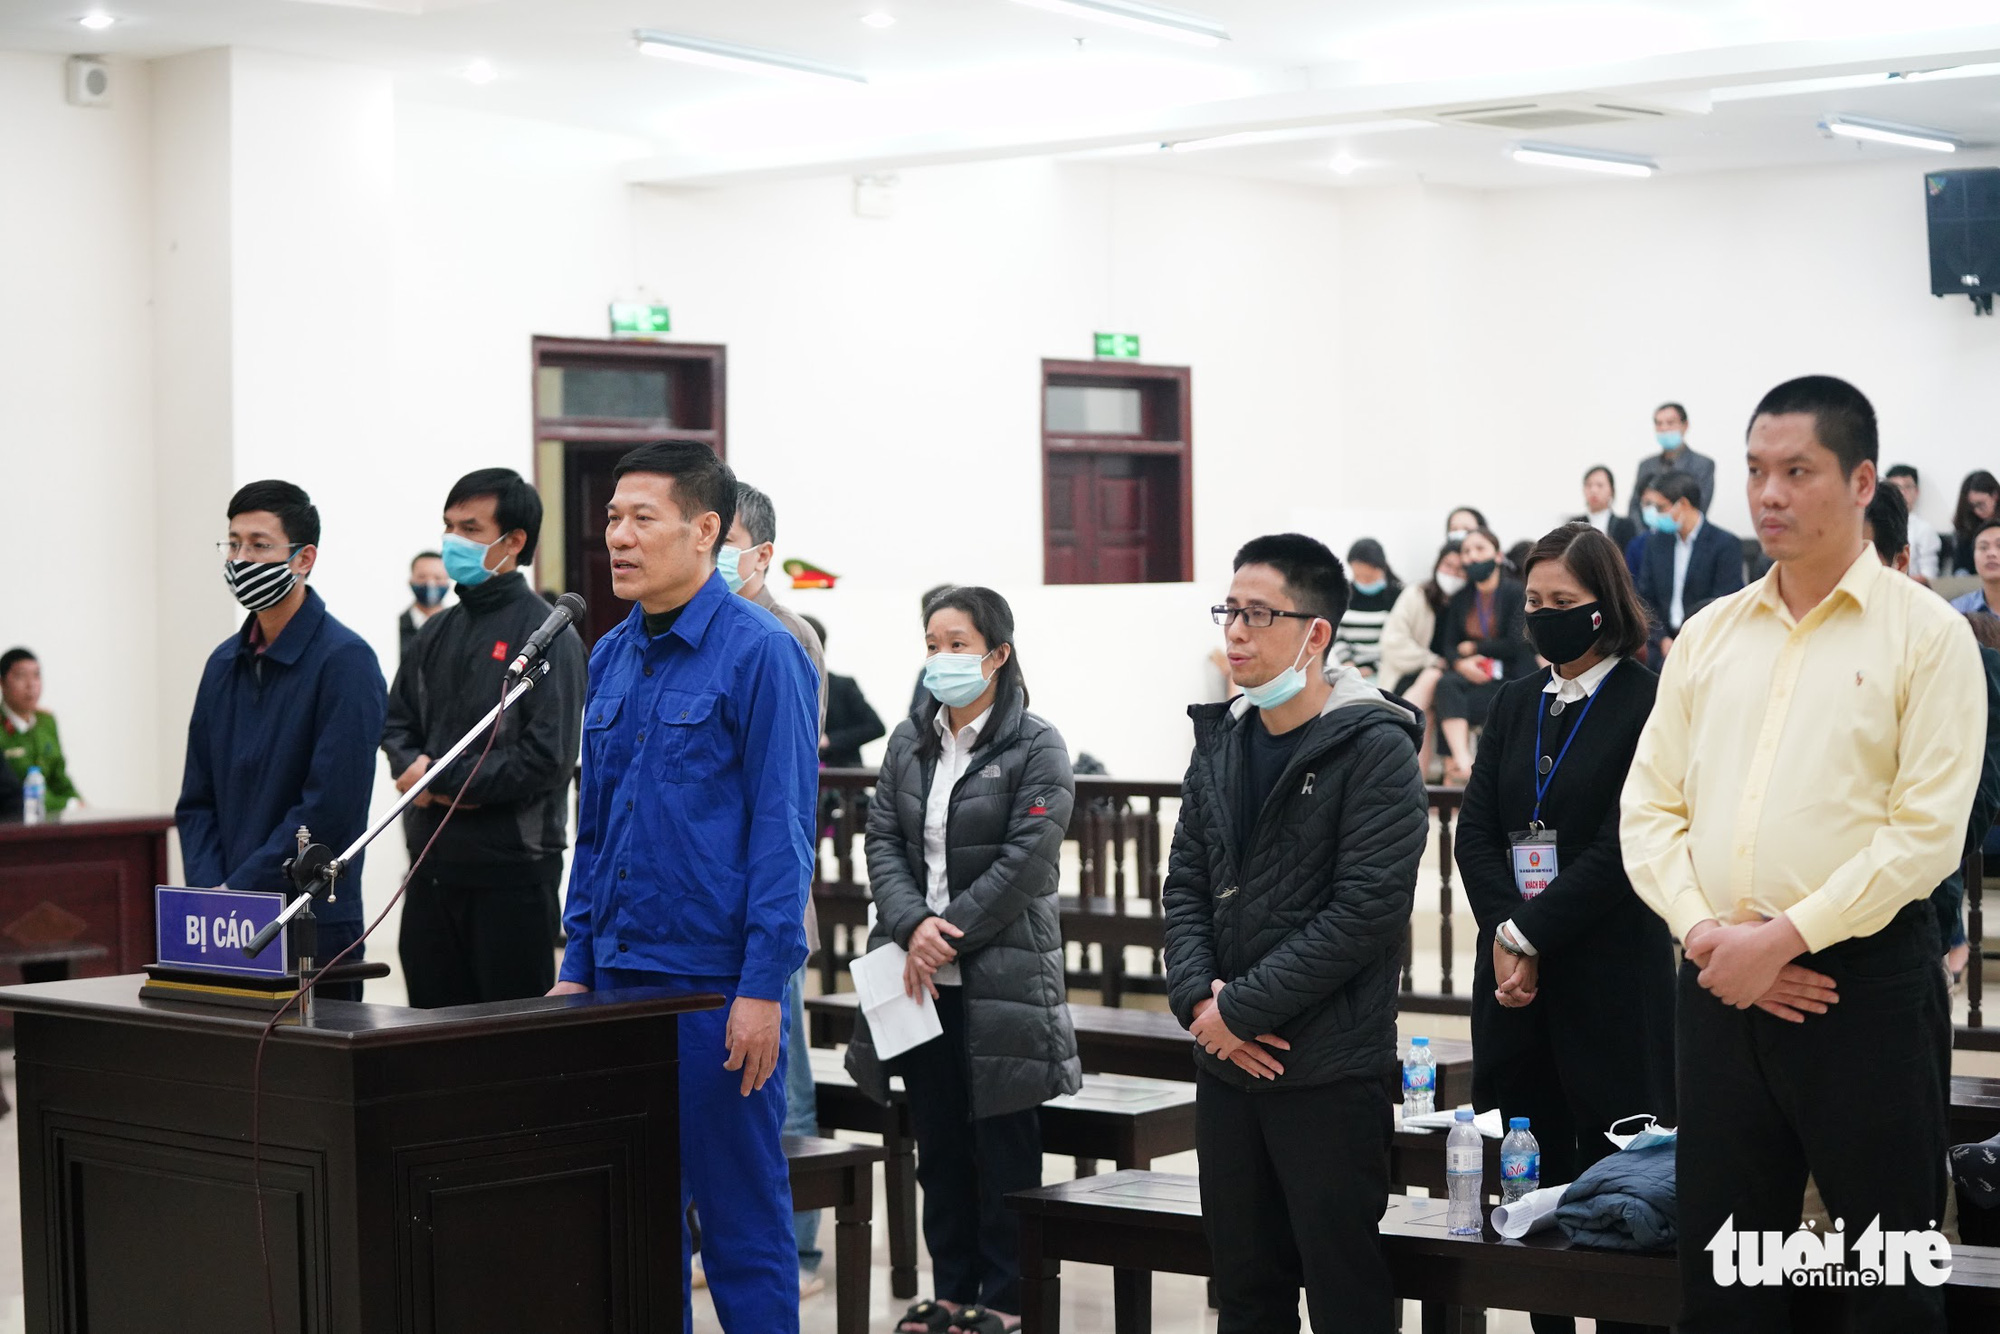 Nguyen Nhat Cam, former director of the Hanoi Center for Disease Control, and other defendants during the trial at the Hanoi People's Court on December 12, 2020. Photo: Danh Trong / Tuoi Tre